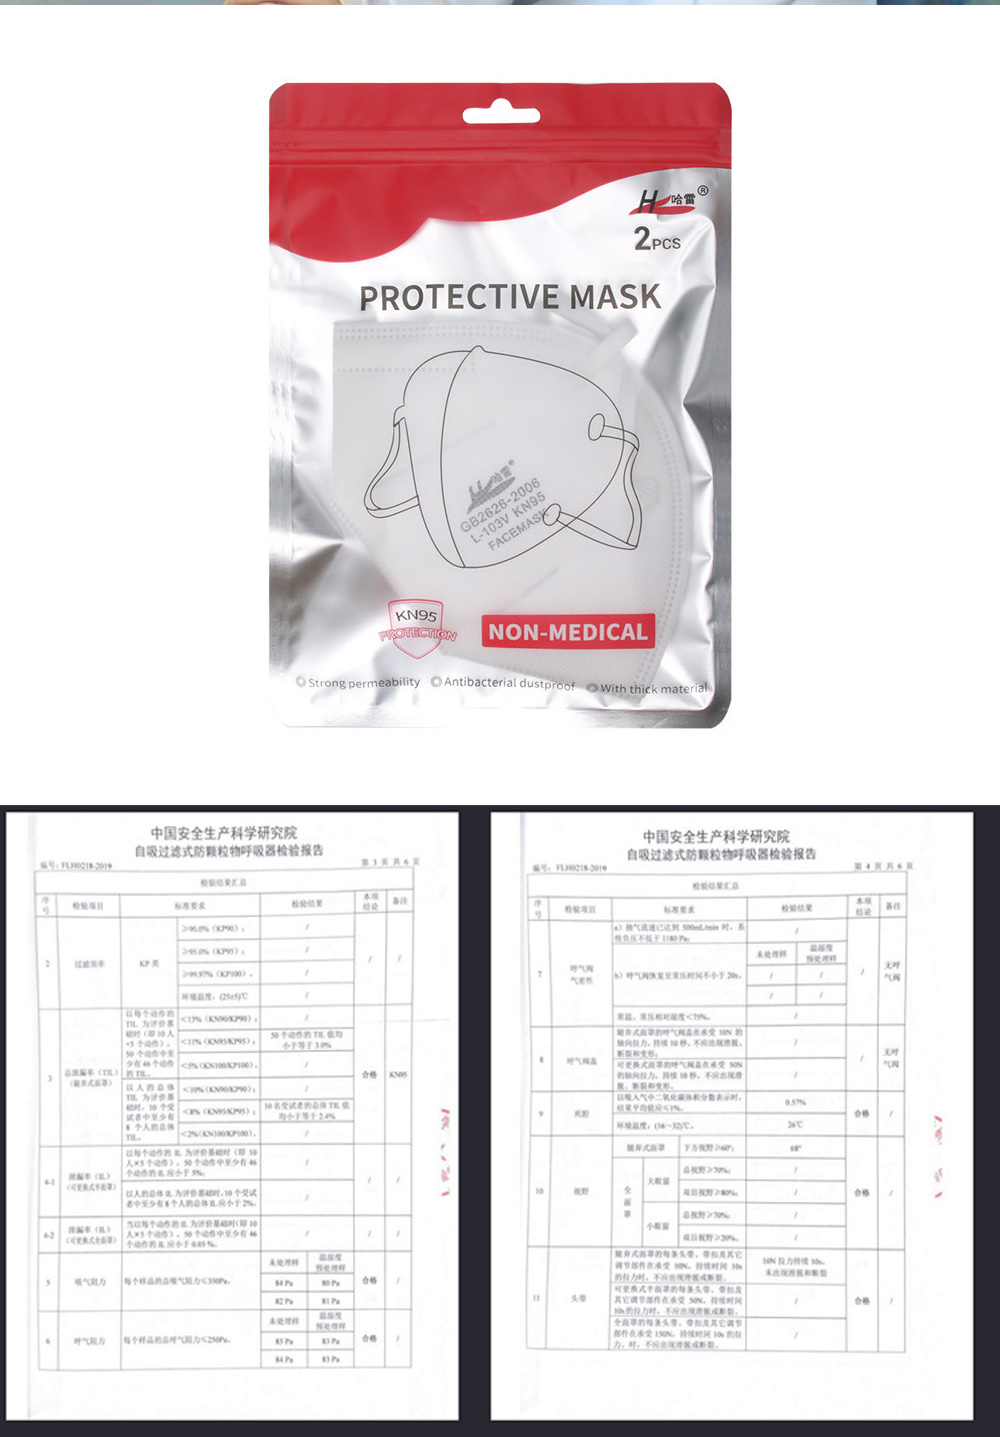 Harley L-103V KN95 Respirator PM2.5 Breathable Antibacterial Masks Non-medical 5